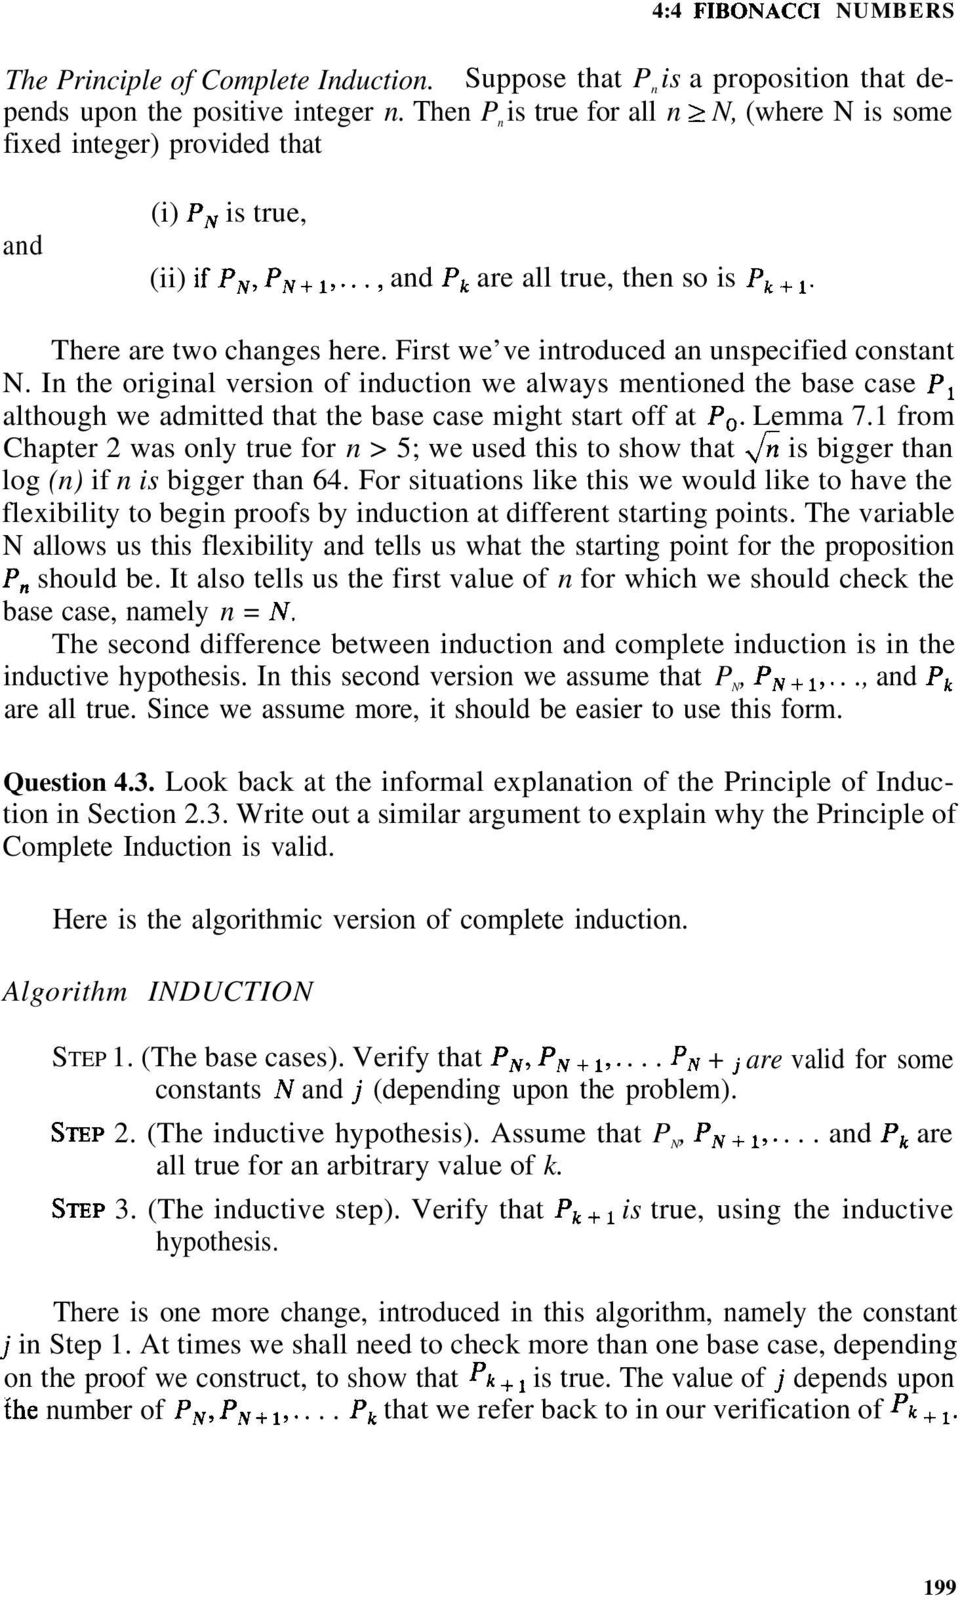 First we ve introduced an unspecified constant N. In the original version of induction we always mentioned the base case PI although we admitted that the base case might start off at Po. Lemma 7.